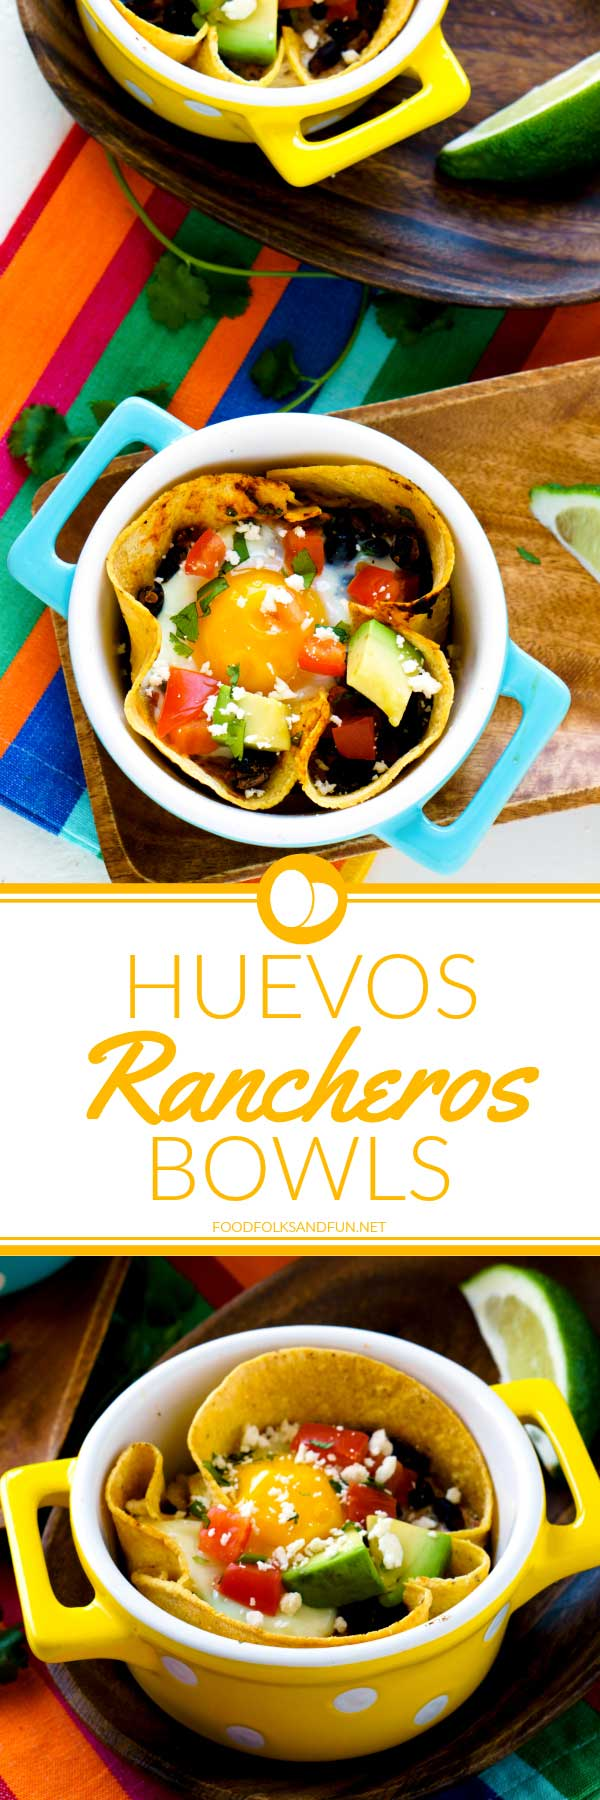 TheseHealthy Huevos Rancheros Breakfast Bowls are not only easy to make but so satisfying and good for you! via @foodfolksandfun